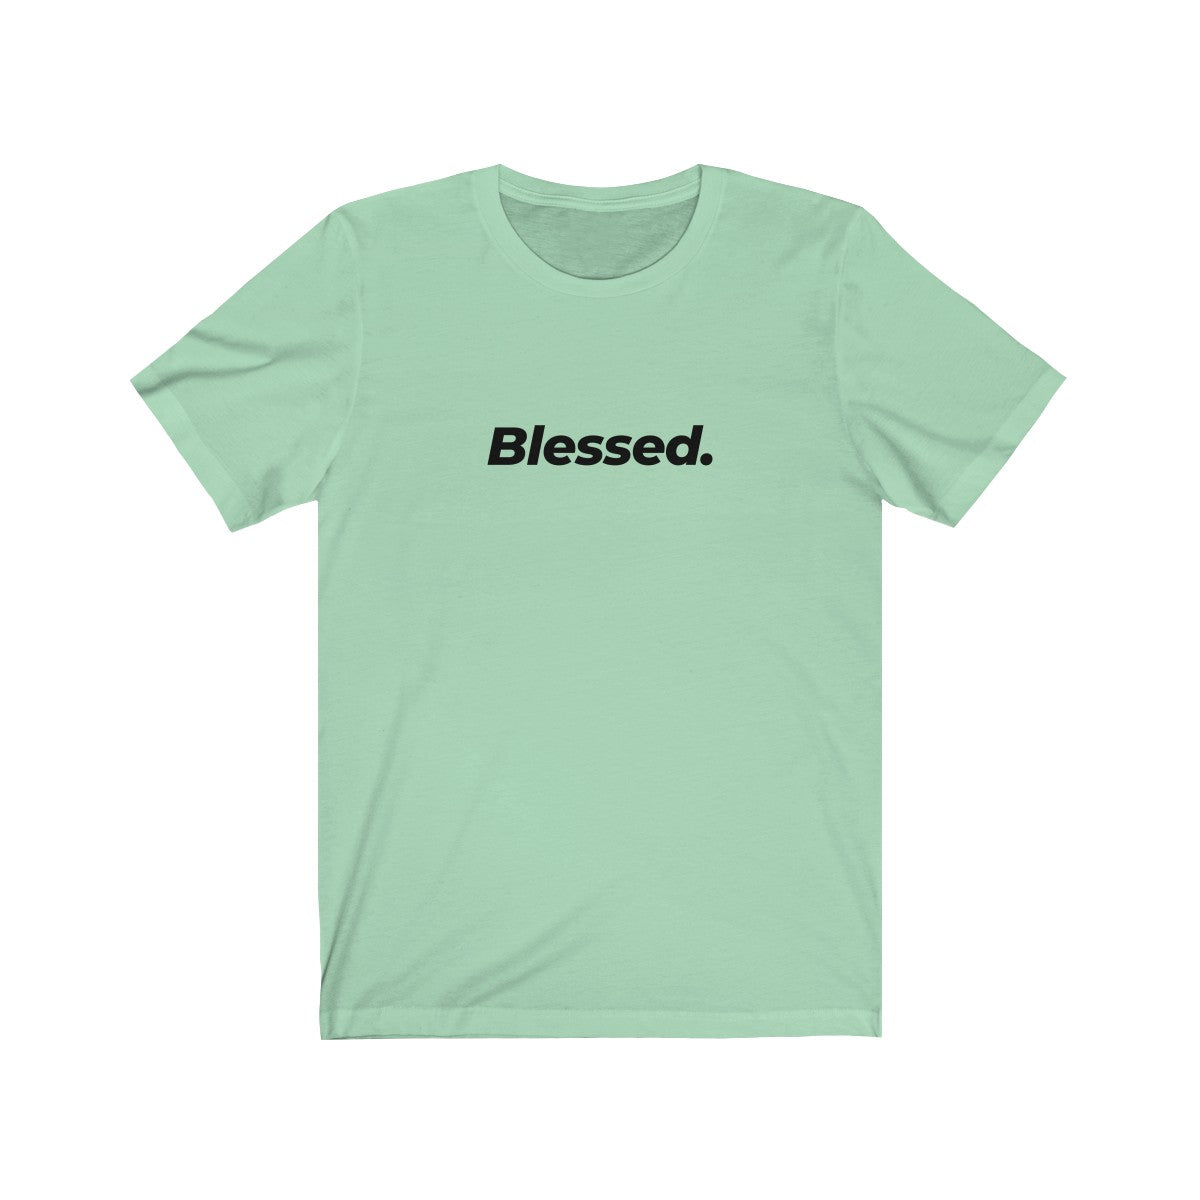 Blessed Unisex Jersey Short Sleeve Tee - LIGHT